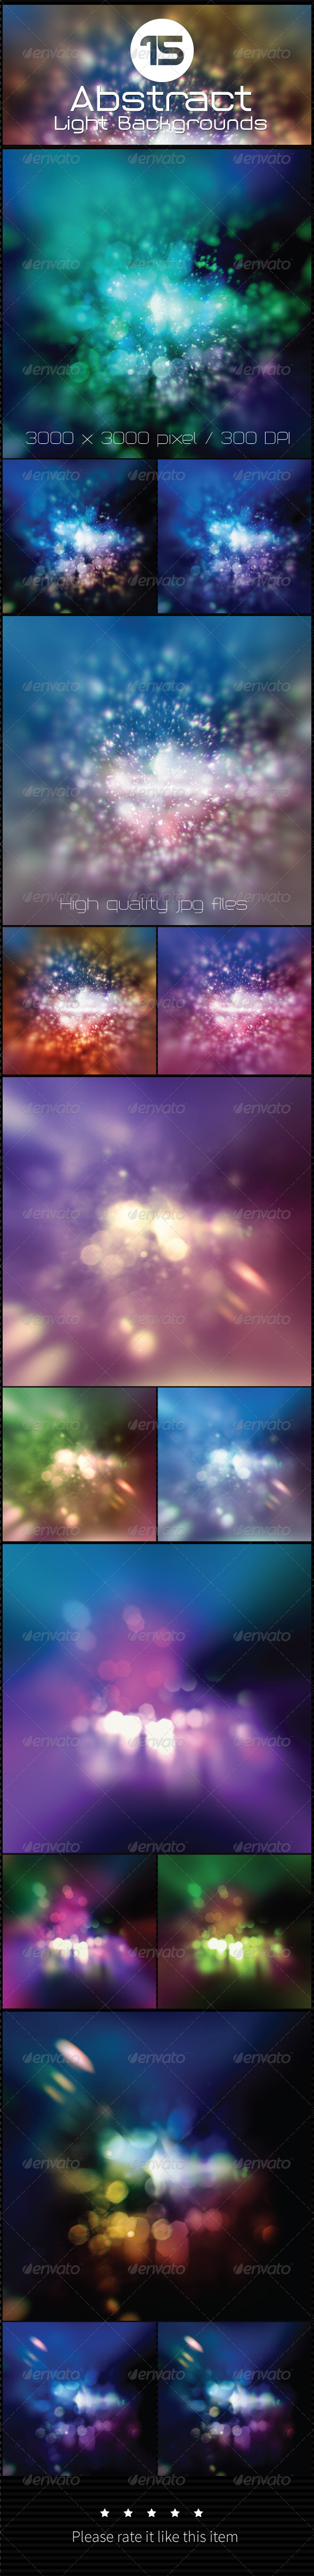 GraphicRiver 15 Abstract Light Background 7755718